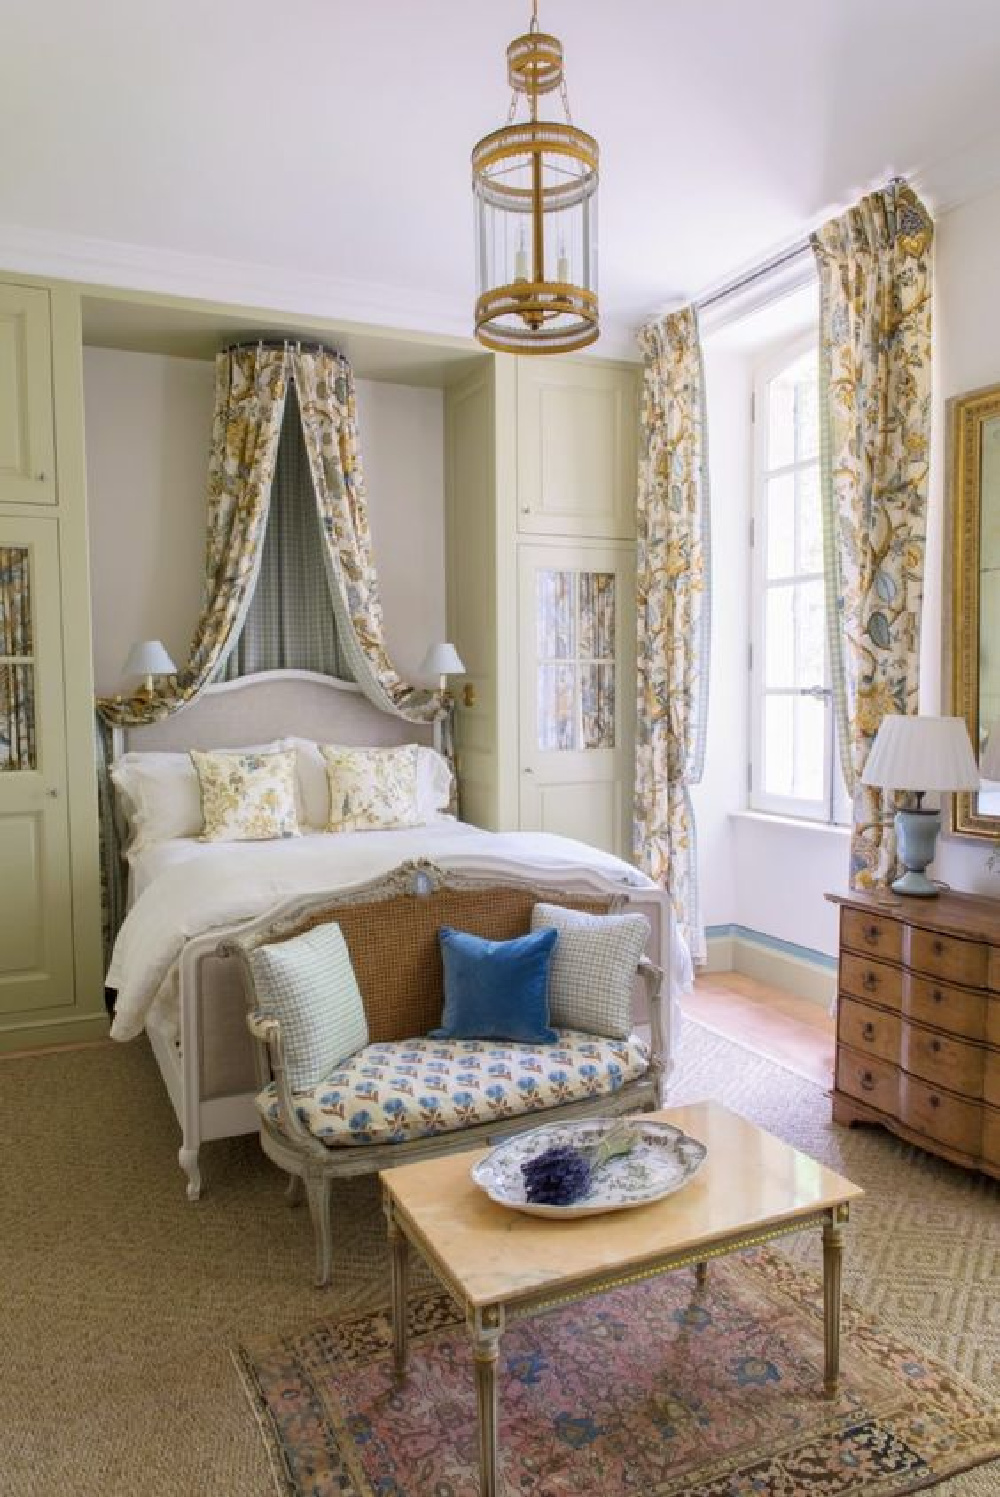 Pierre Frey fabrics and traditional style in a breathtaking French country bedroom in a Provence farmhouse (Le Mas des Poiriers).